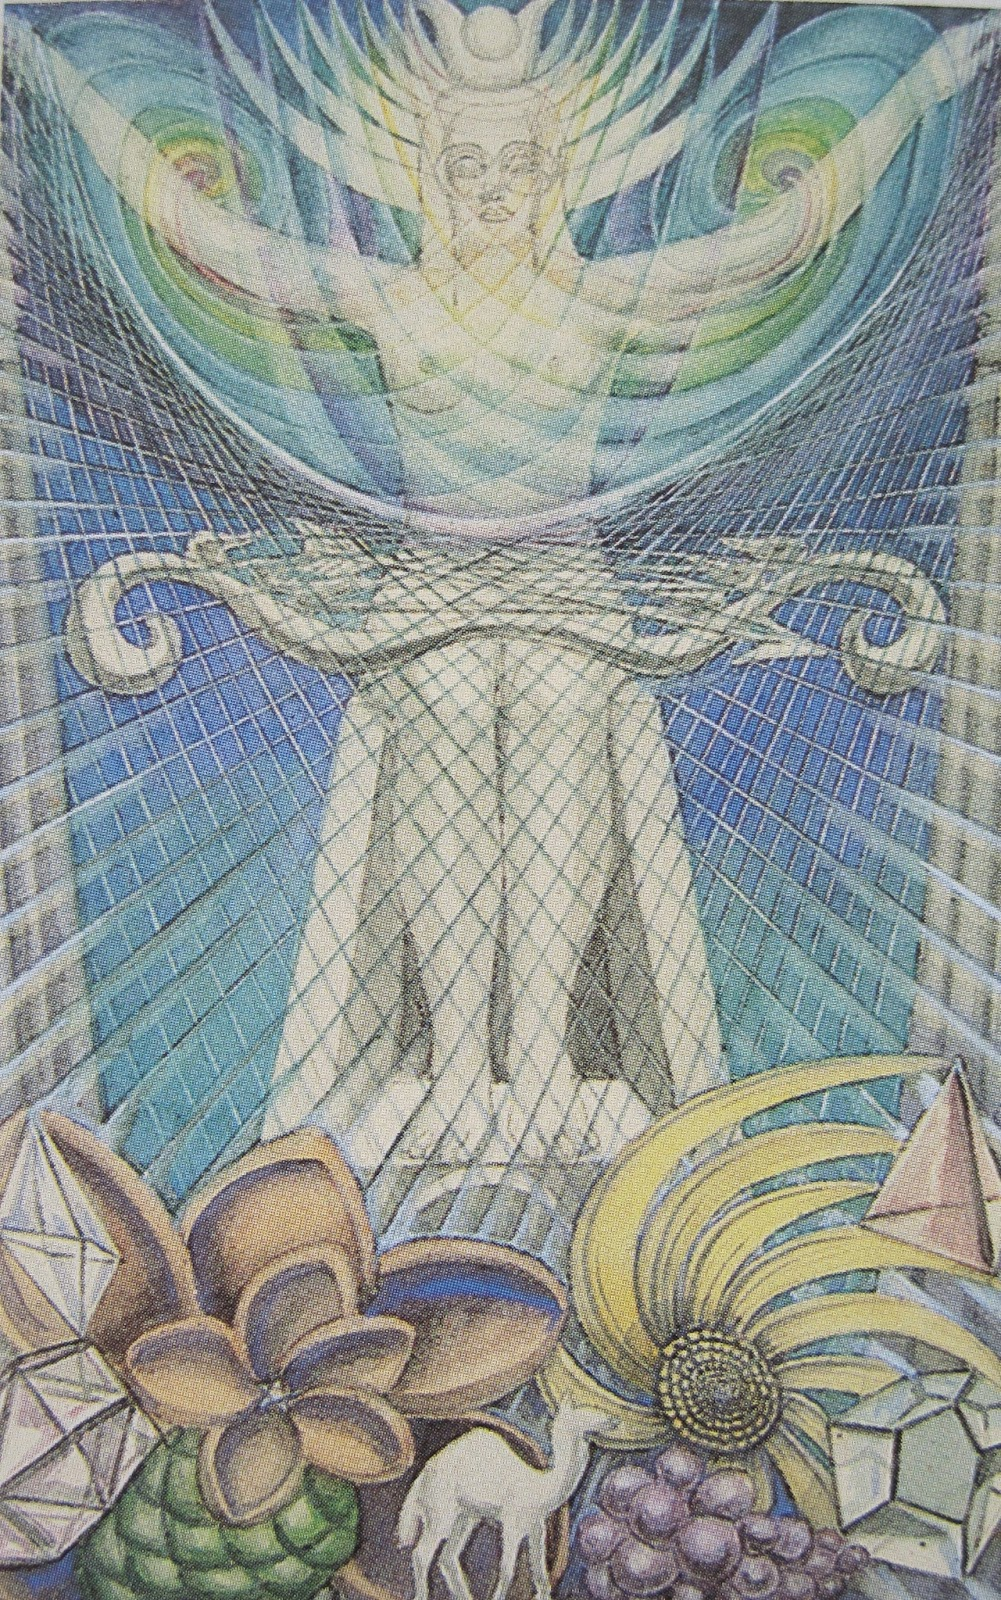 image of High Priestess card from Crowley/Harris Thoth Tarot deck